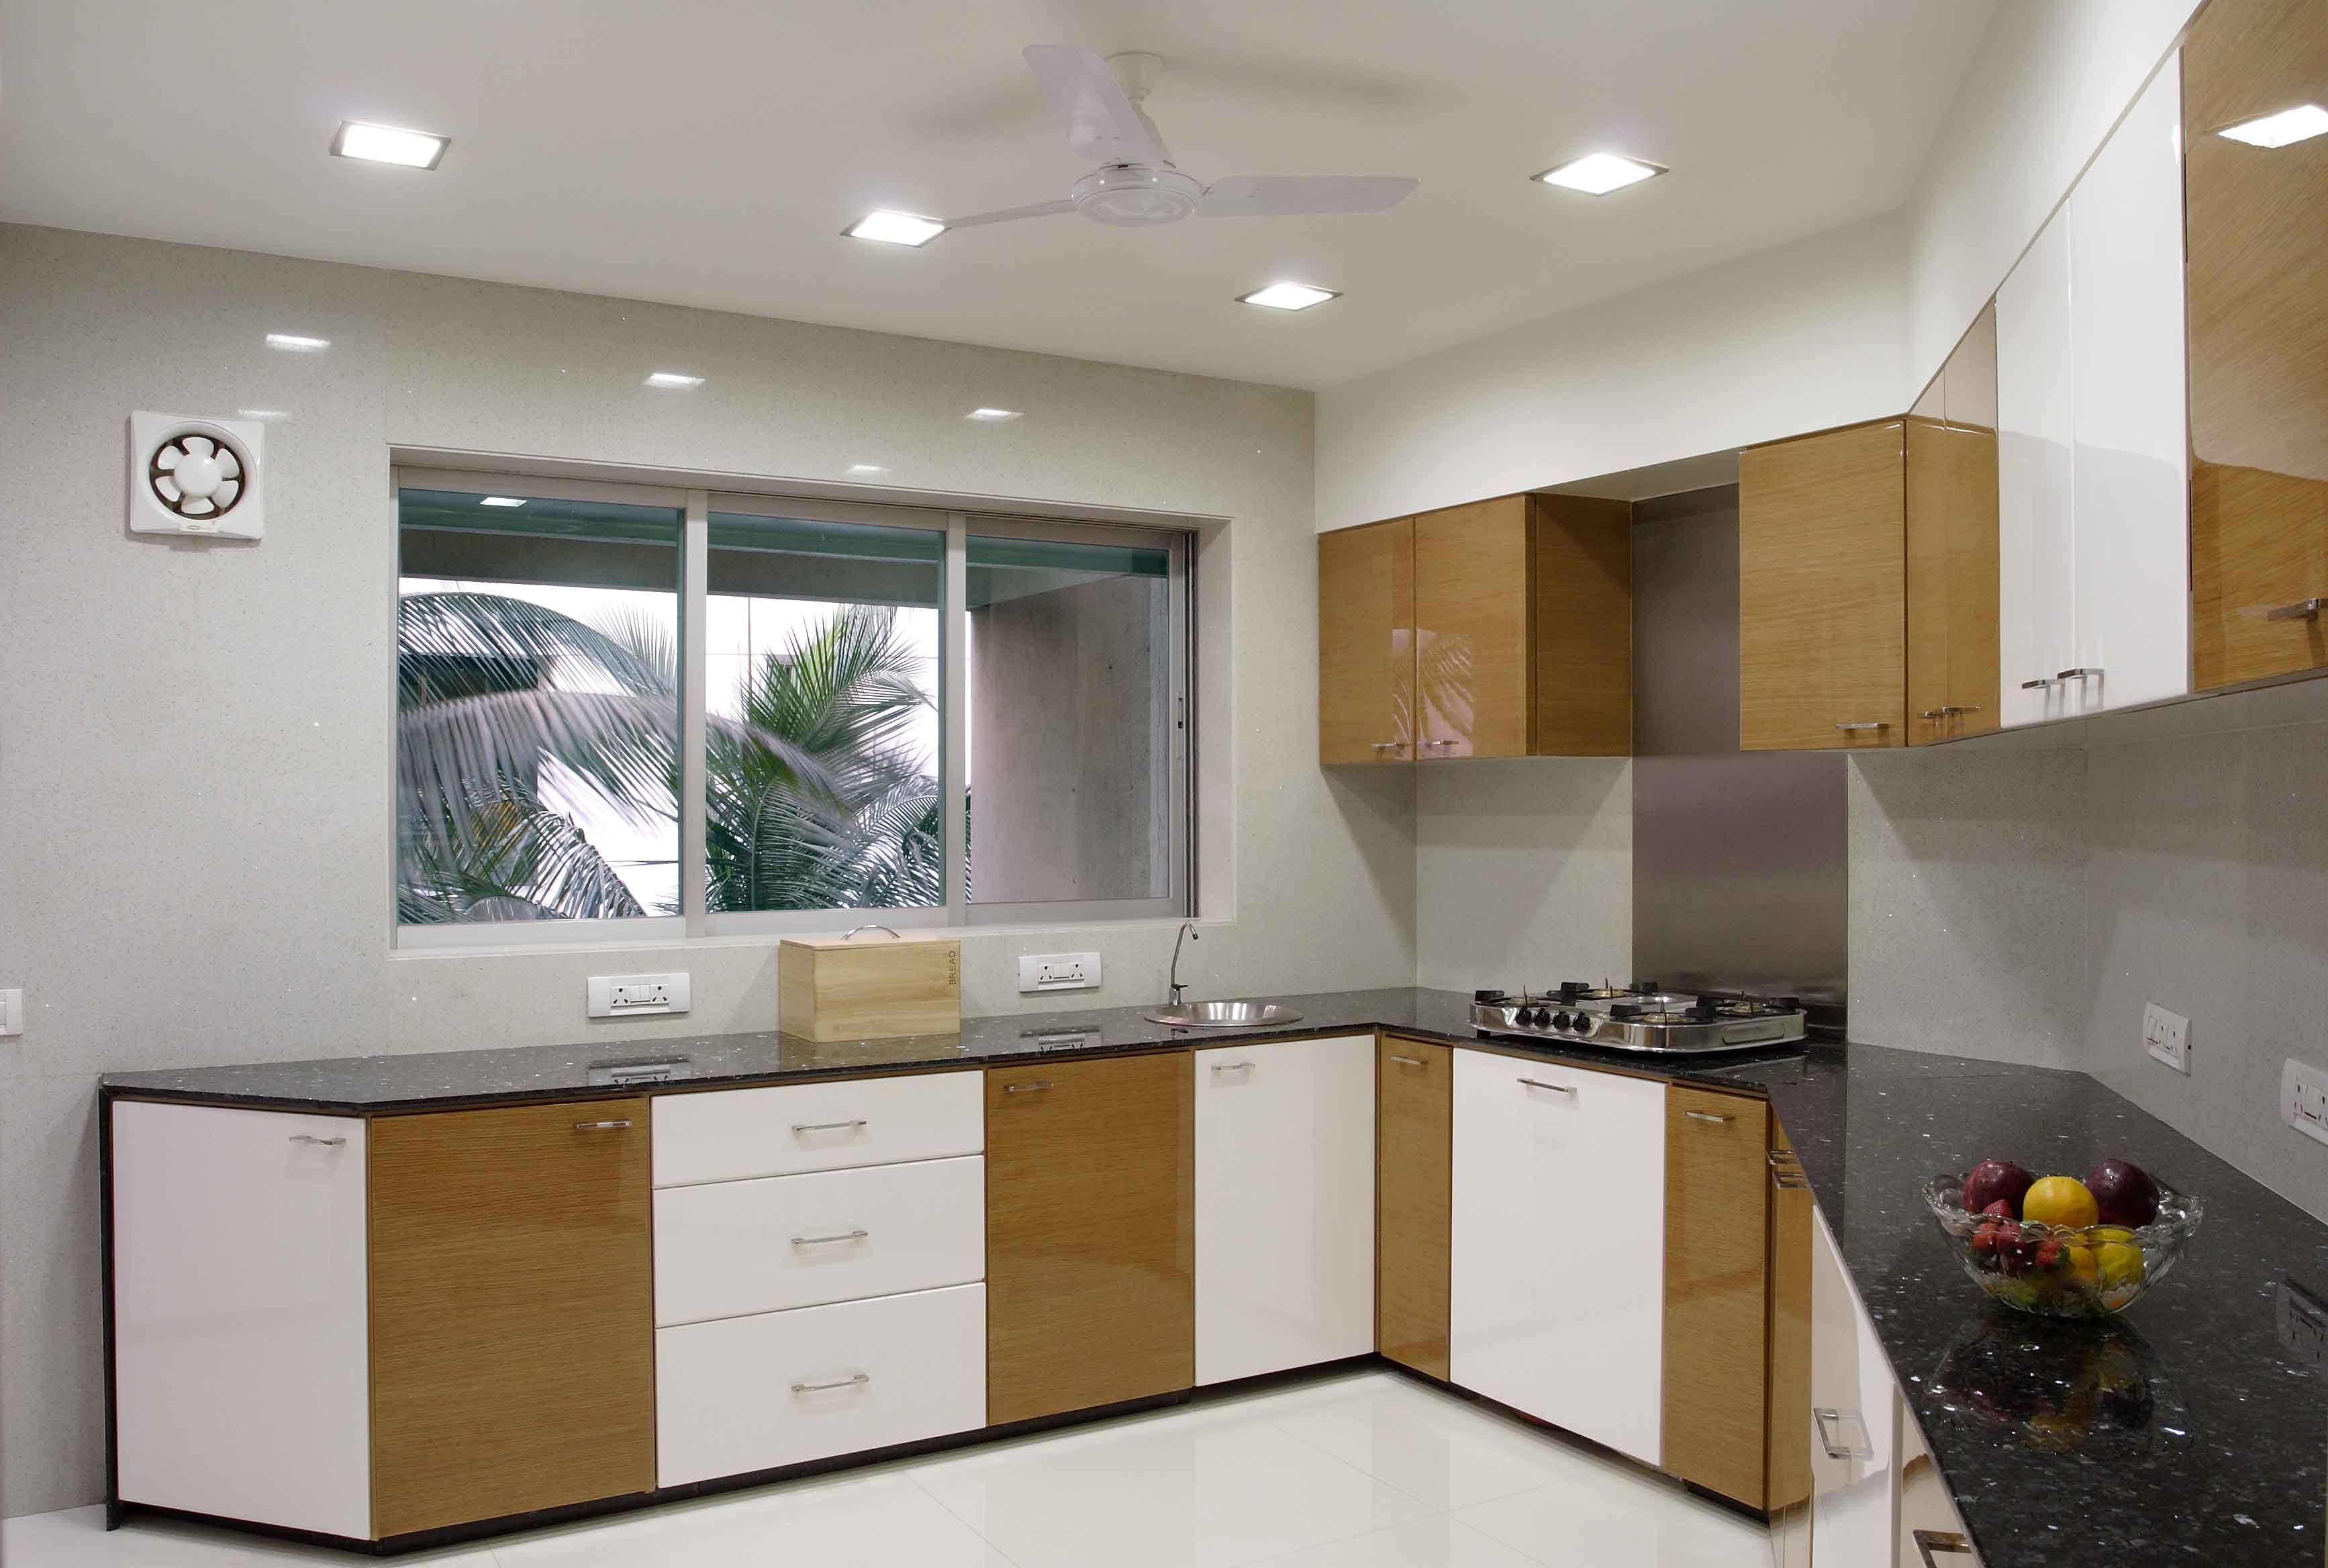 Kitchen Designs Photo Gallery | Modular Kitchen Designs | DeCoR ...